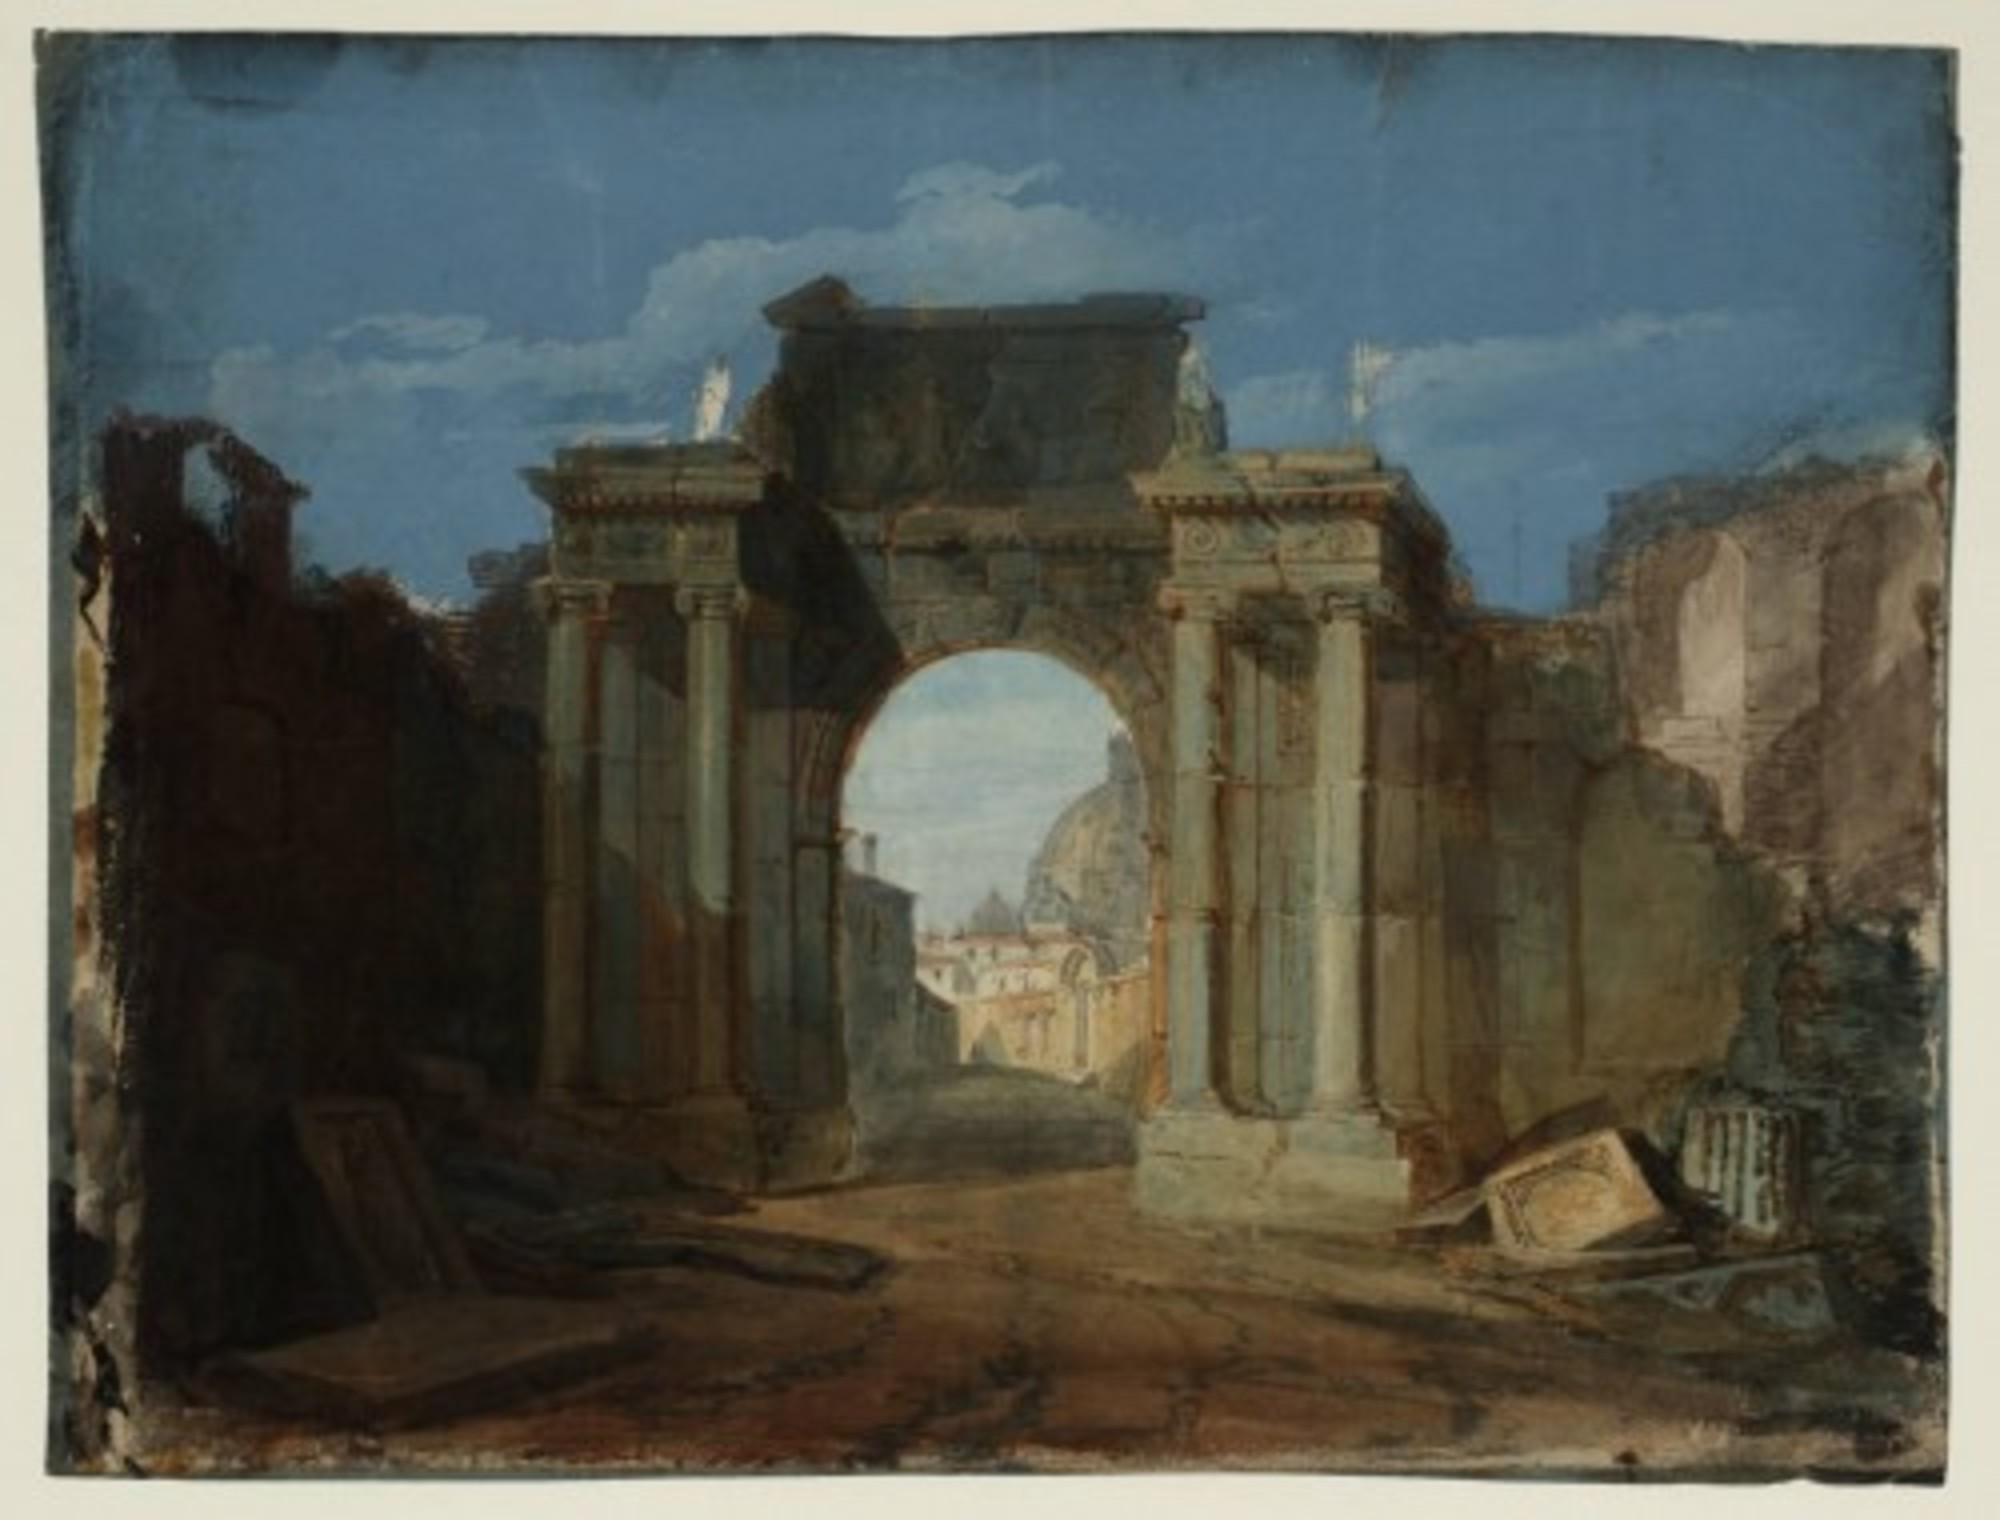 A-Capriccio-with-the-Dome-of-St-Peters-Rome-Seen-through-a-Ruined-Triumphal-Arch-1797.jpg